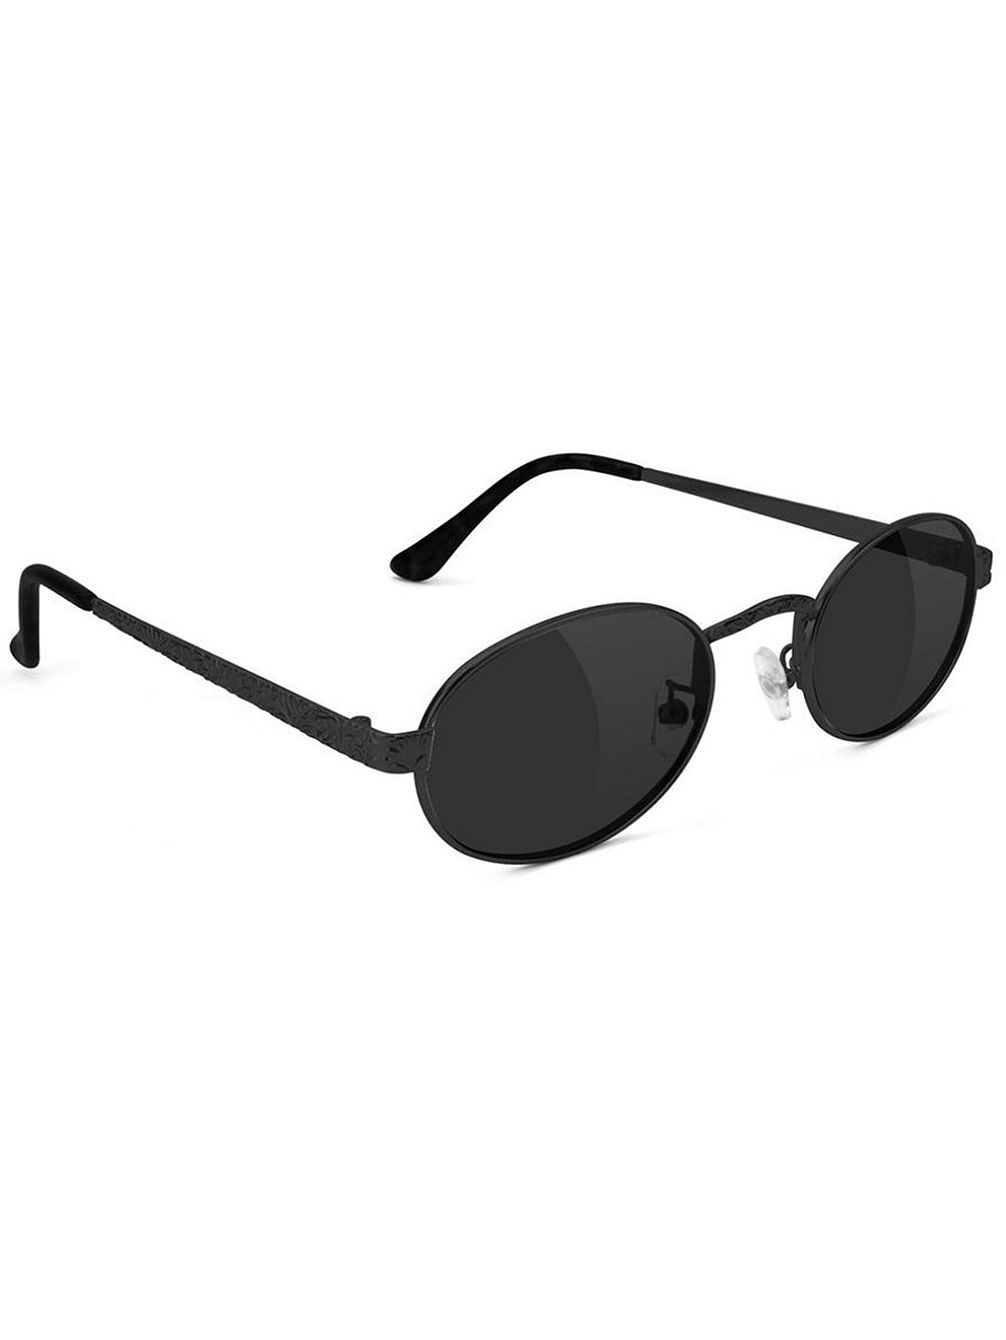 Zion Premium black Polarized